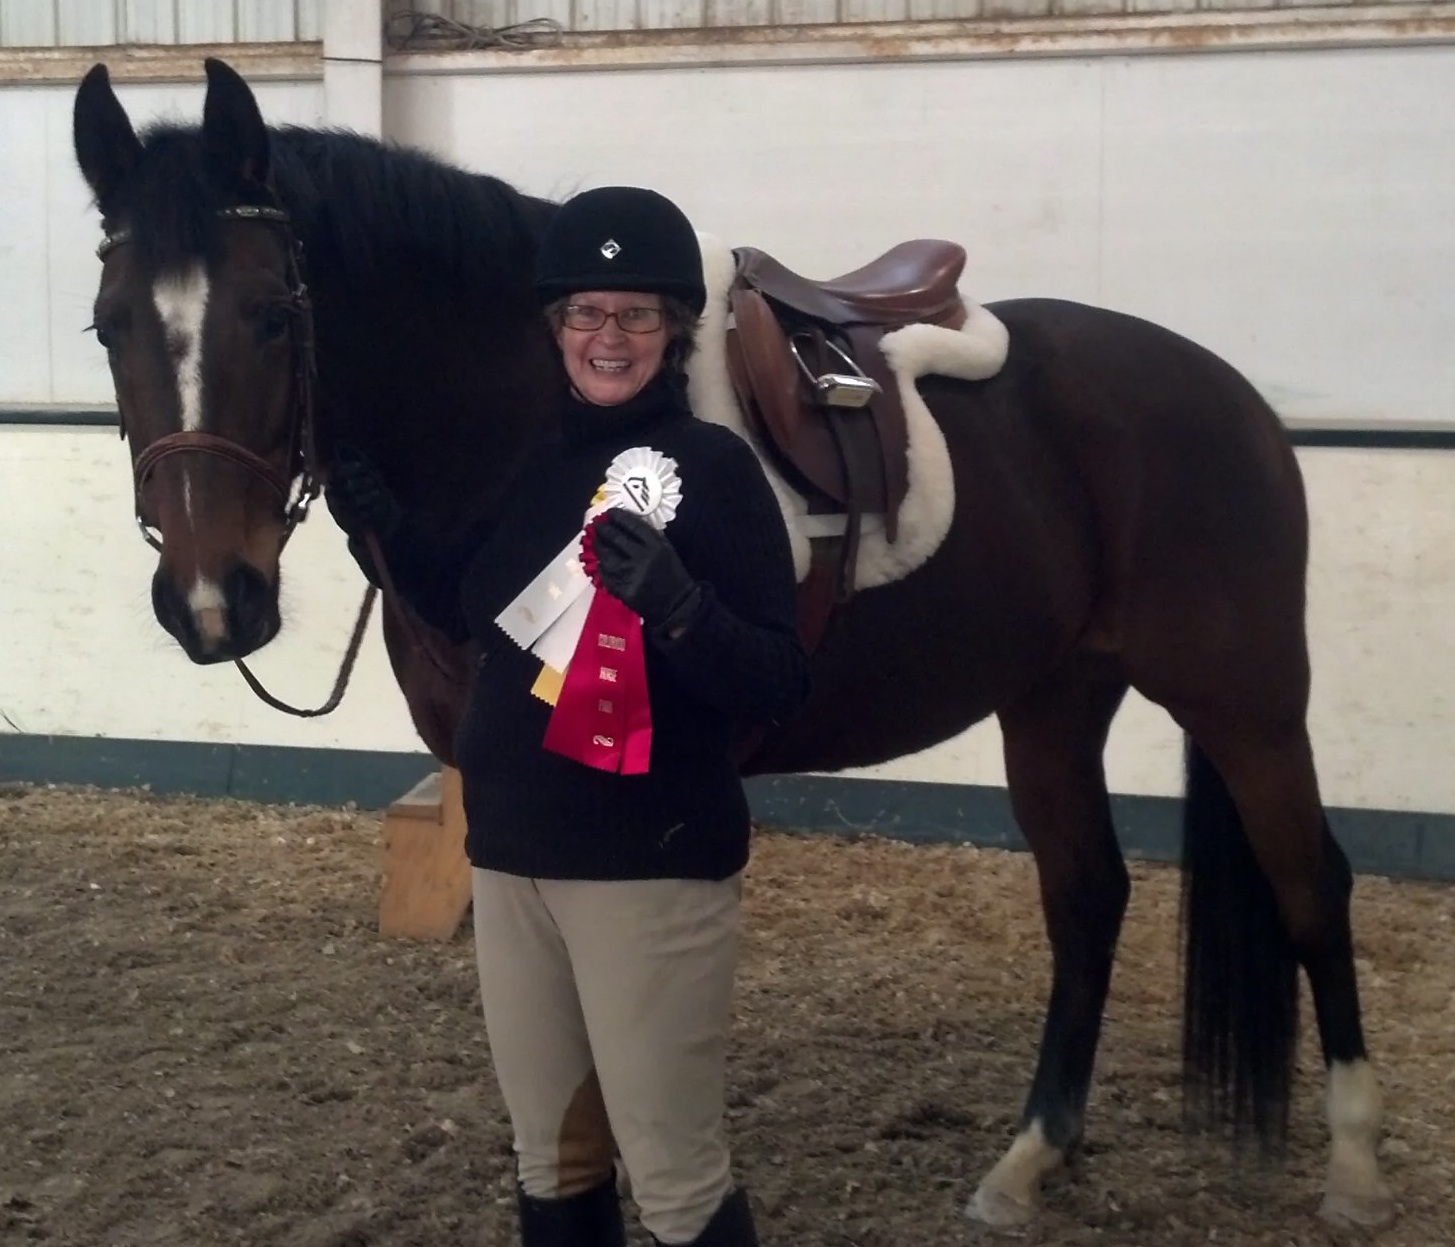 Hanora and Verilee with their first ribbons together in 2013.